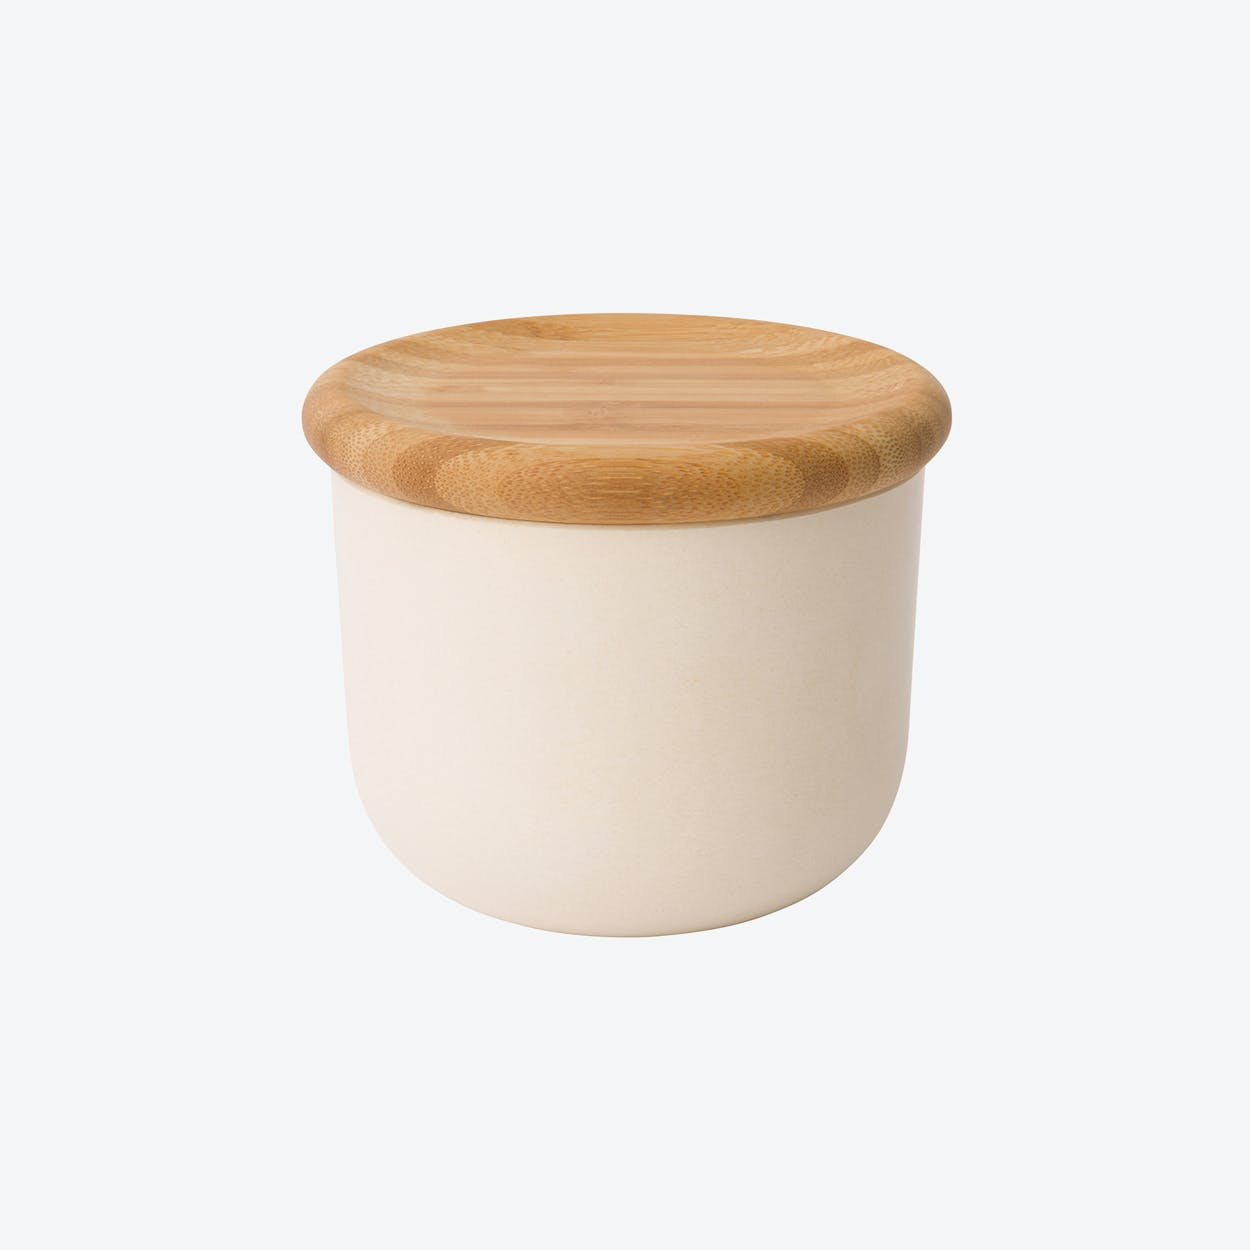 Canister w/ Bamboo Lid in Beige, Set of 5